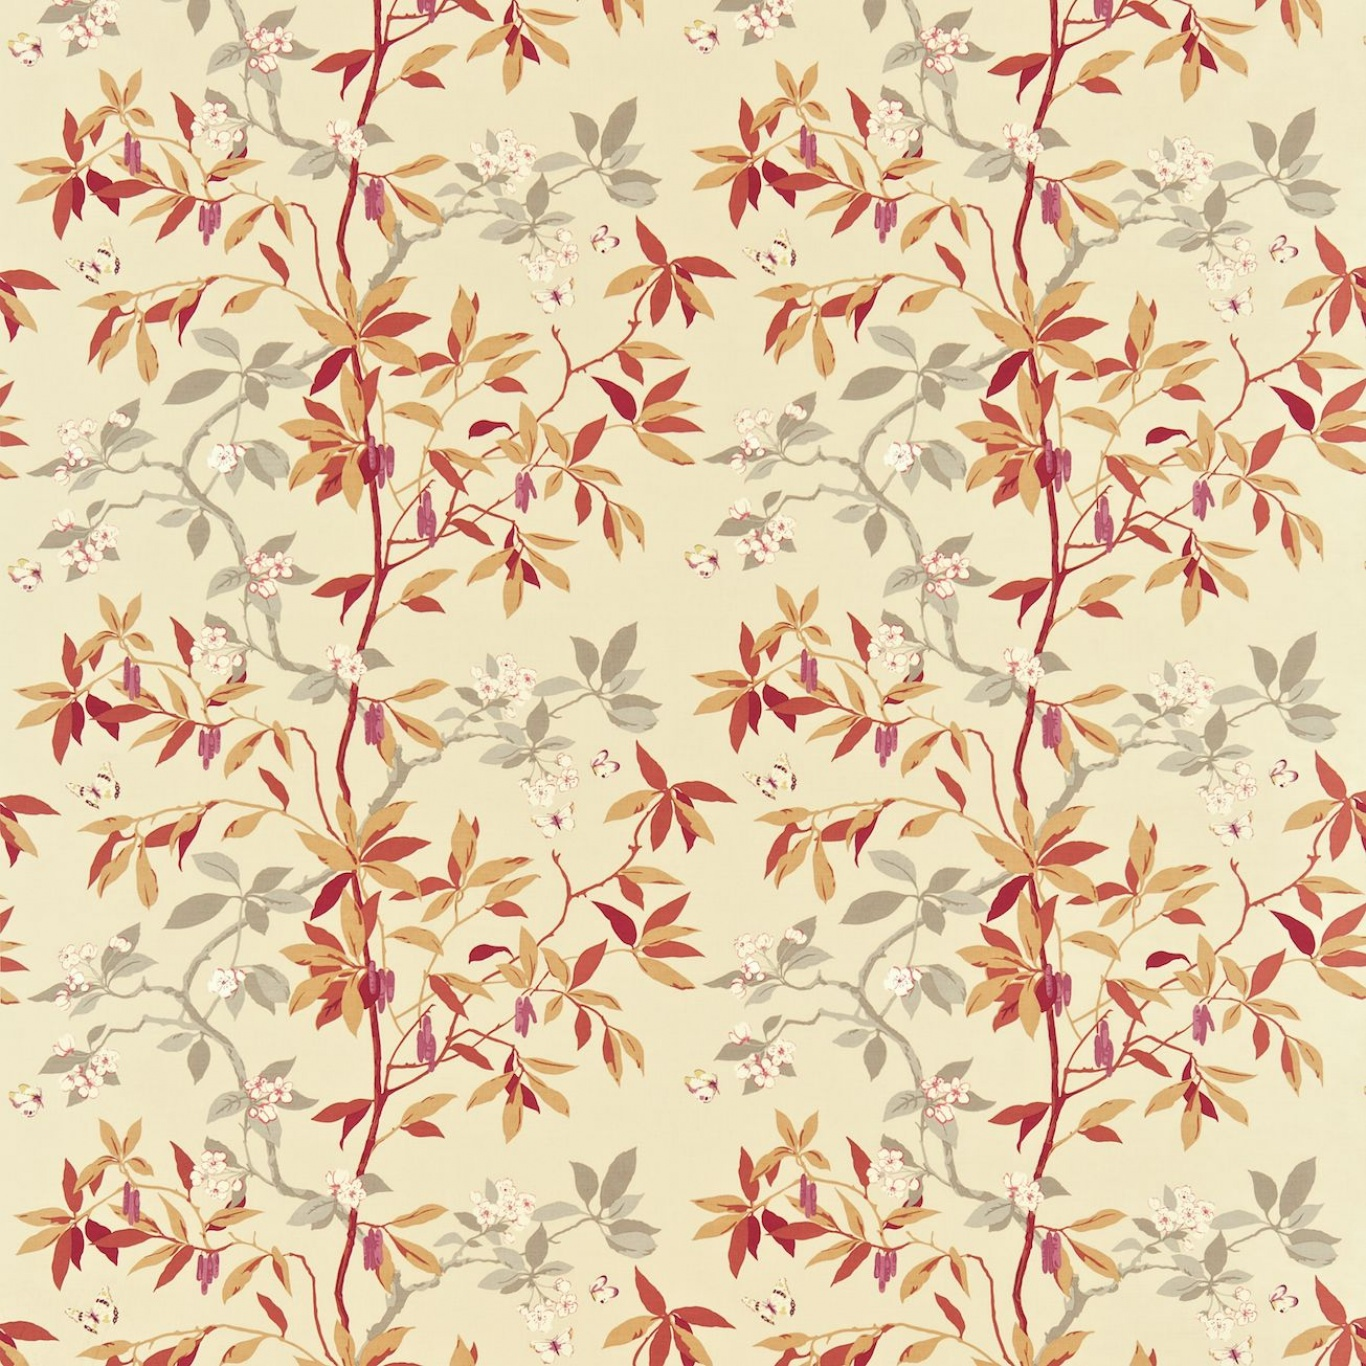 Image of Sanderson Cherry Bough Russet/Steel Curtain Fabric 221945